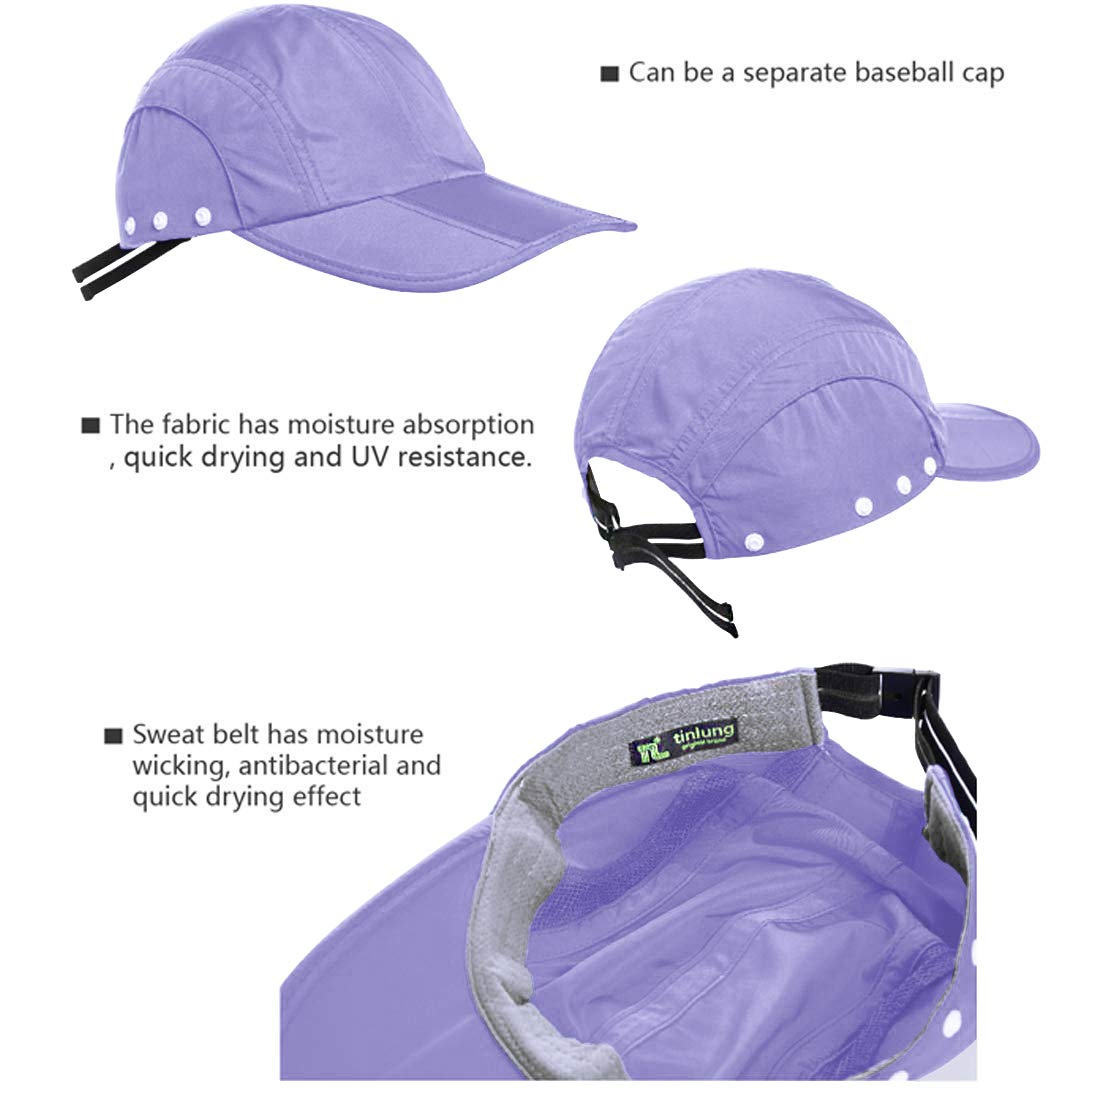 TINLUNG Sun Caps UV Protection UPF 50+Flap Hats Removable Face Neck Flap Cover Caps Shade Hat for Women Men Baseball Backpacking Cycling Hiking Fishing Garden Hunting (Violet